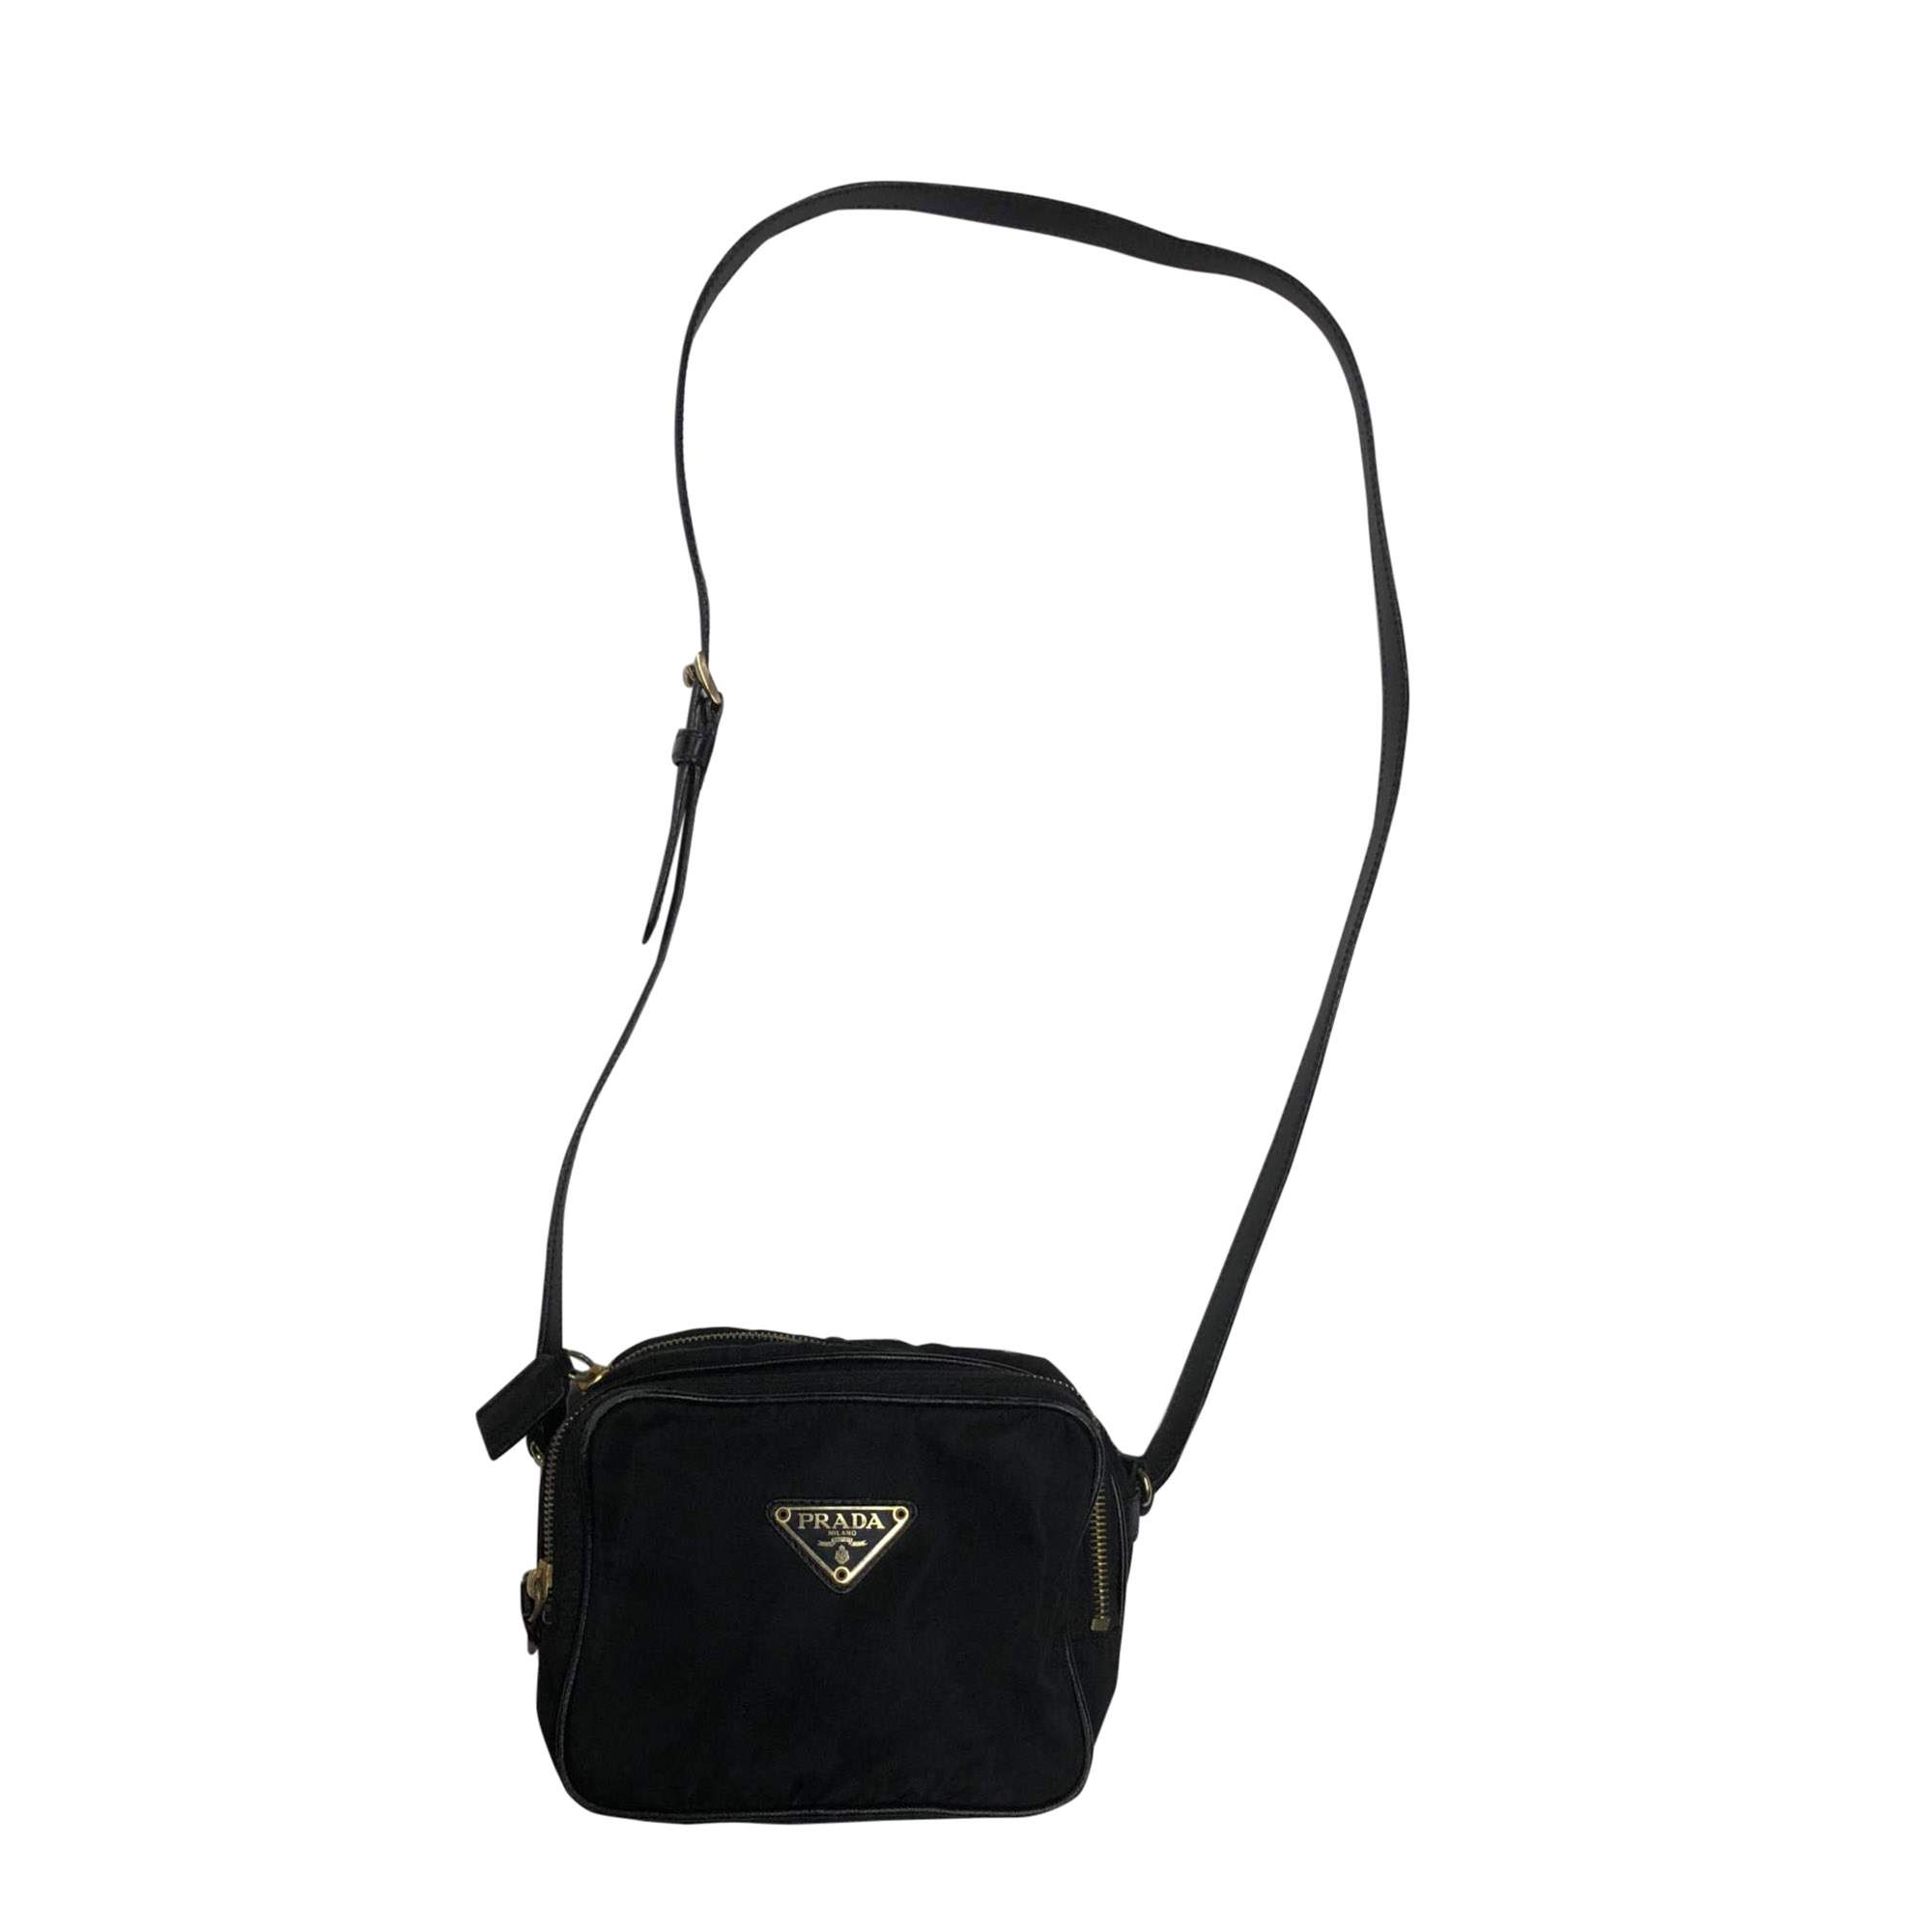 250f2e3dce09 Prada Vintage Black Nylon Crossbody Pouch | The Chic Selection